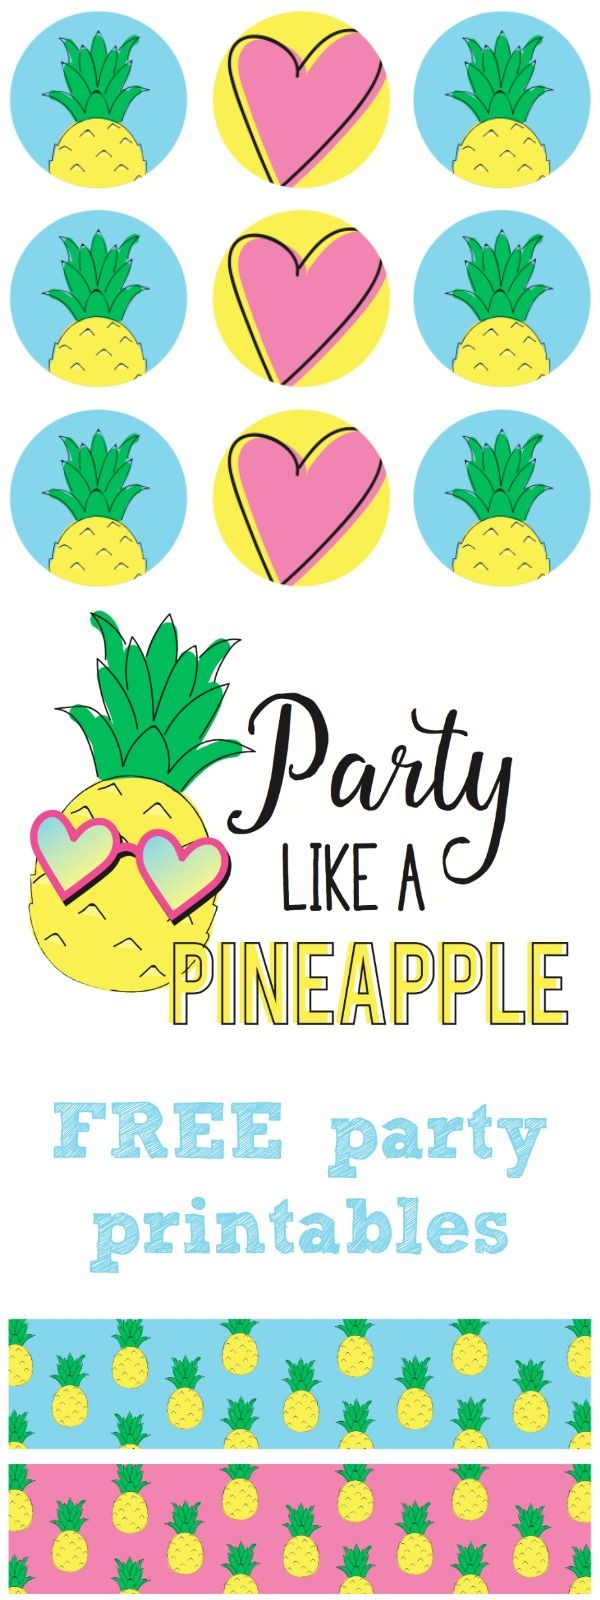 Party Like A Pineapple!!! Complete Free Printable Party Set <3 - Free Printable Pineapple Invitations